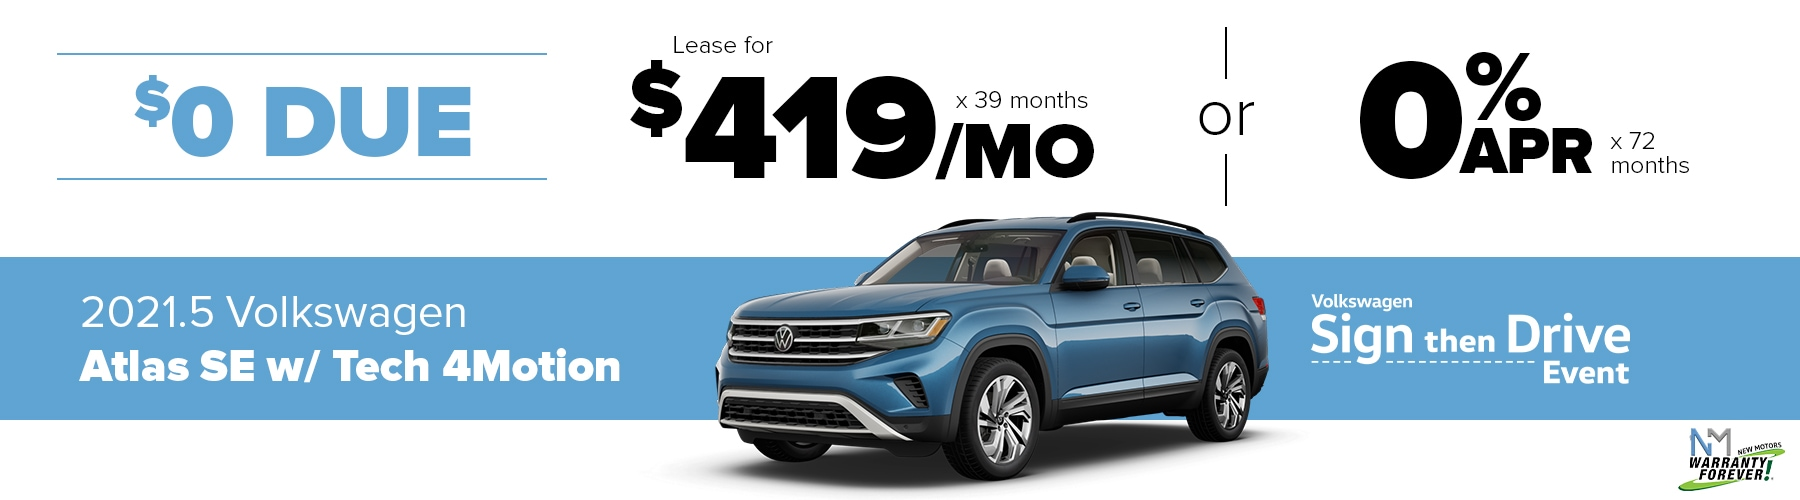 New Motors VW Monthly Offer Atlas Sport